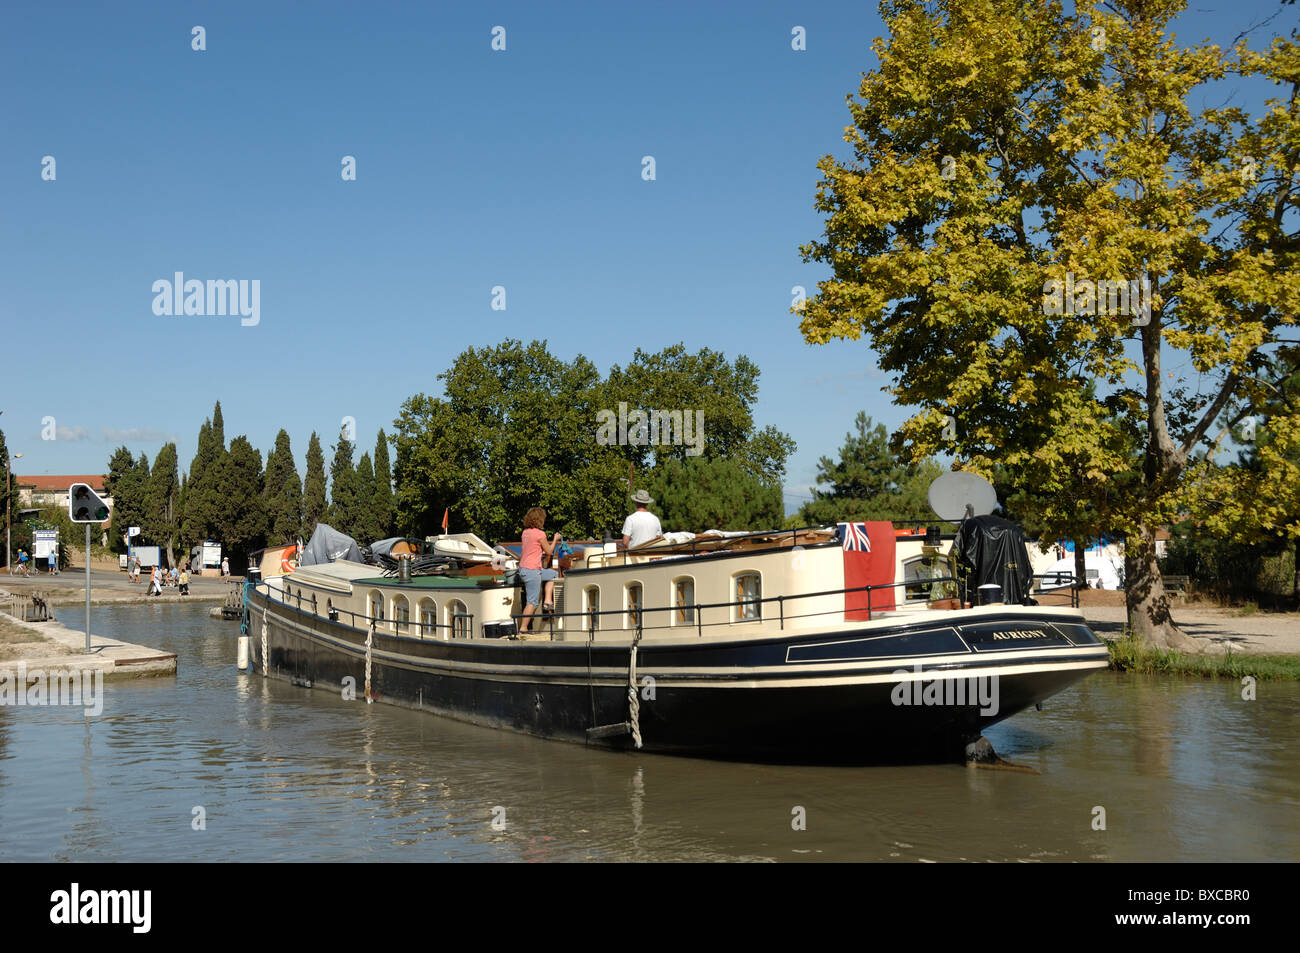 Canal du Midi and Canal Longboat entering Lock System of Fonserannes Lock, or Les Neuf Ecluses, at Beziers, France - Stock Image